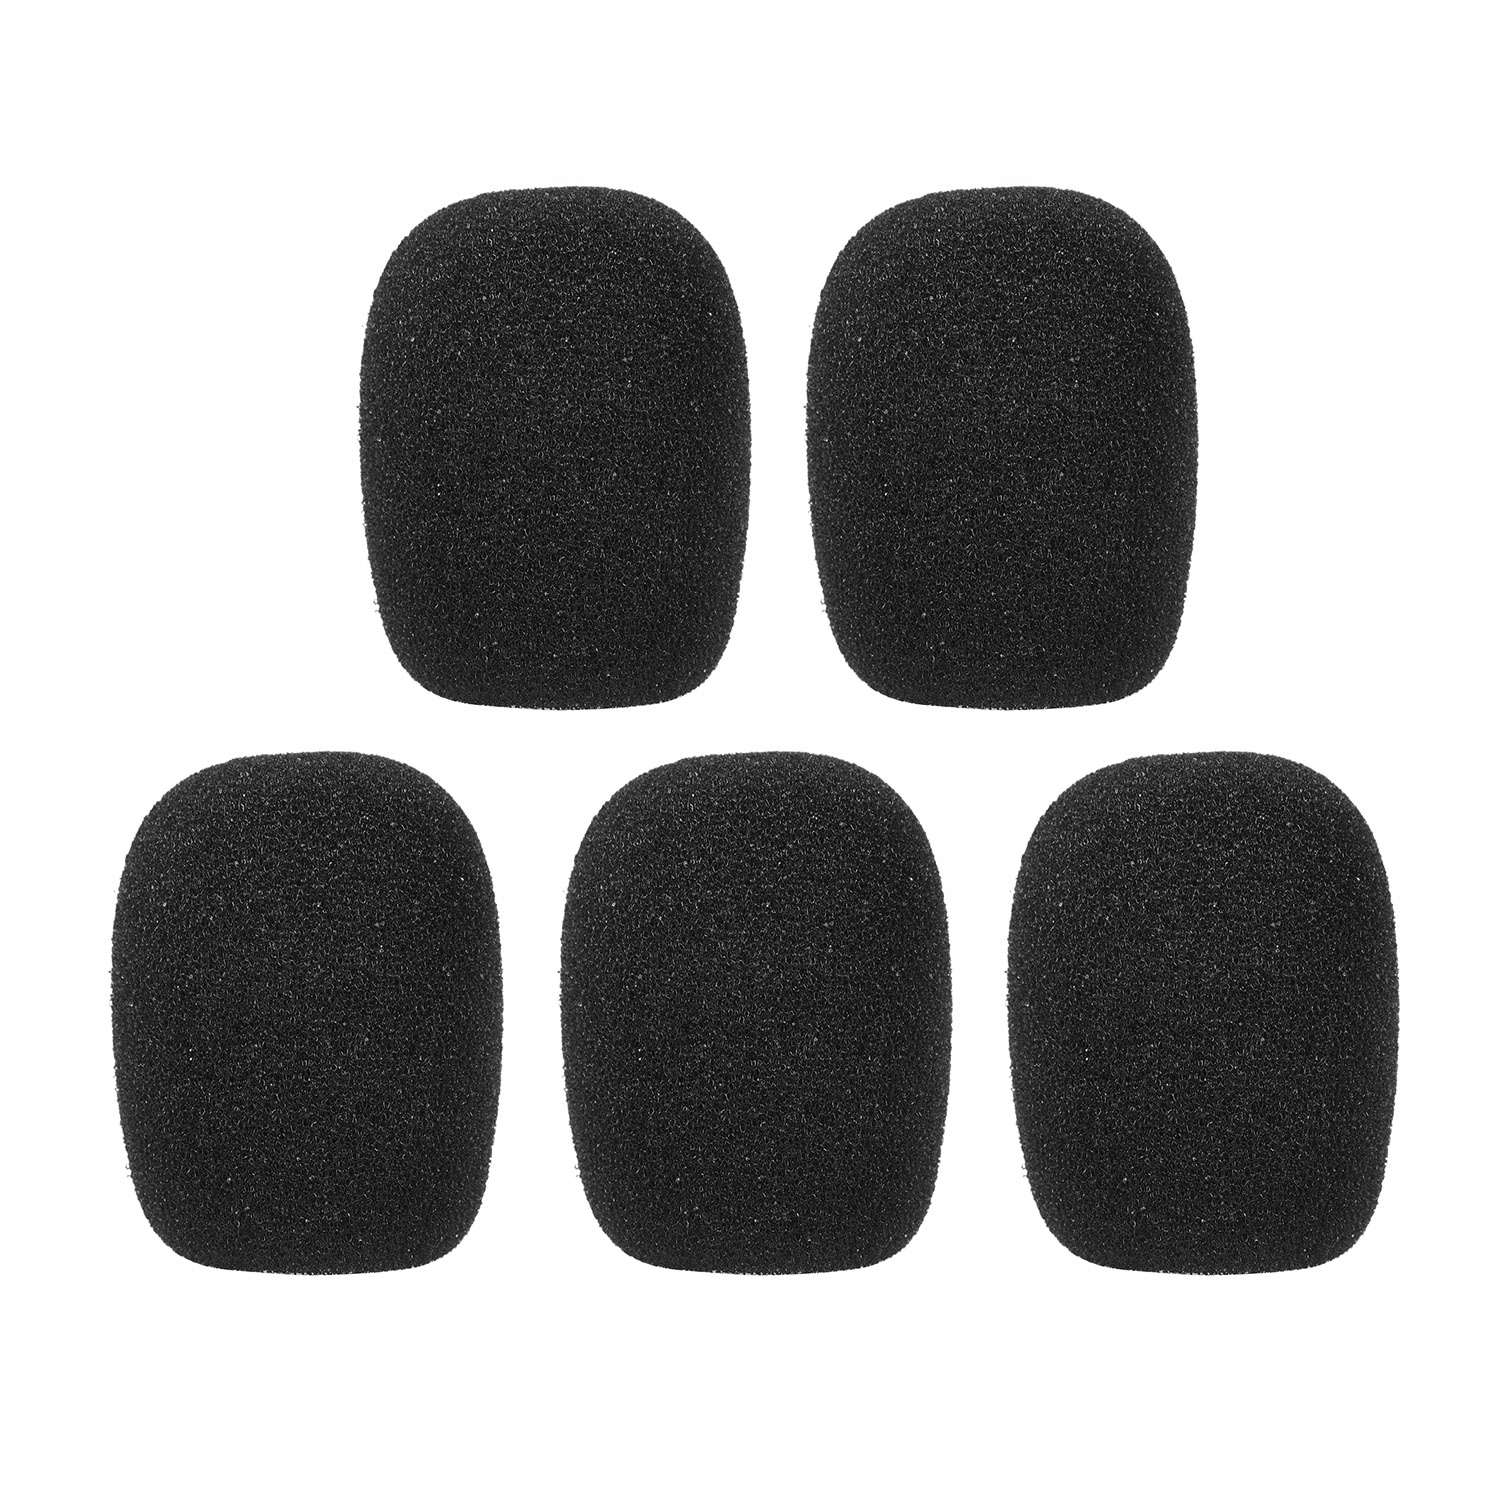 5pcs Mini Microphone Windscreens Mic Foam Covers for Lapel Lavalier Headset Microphone Accessaries